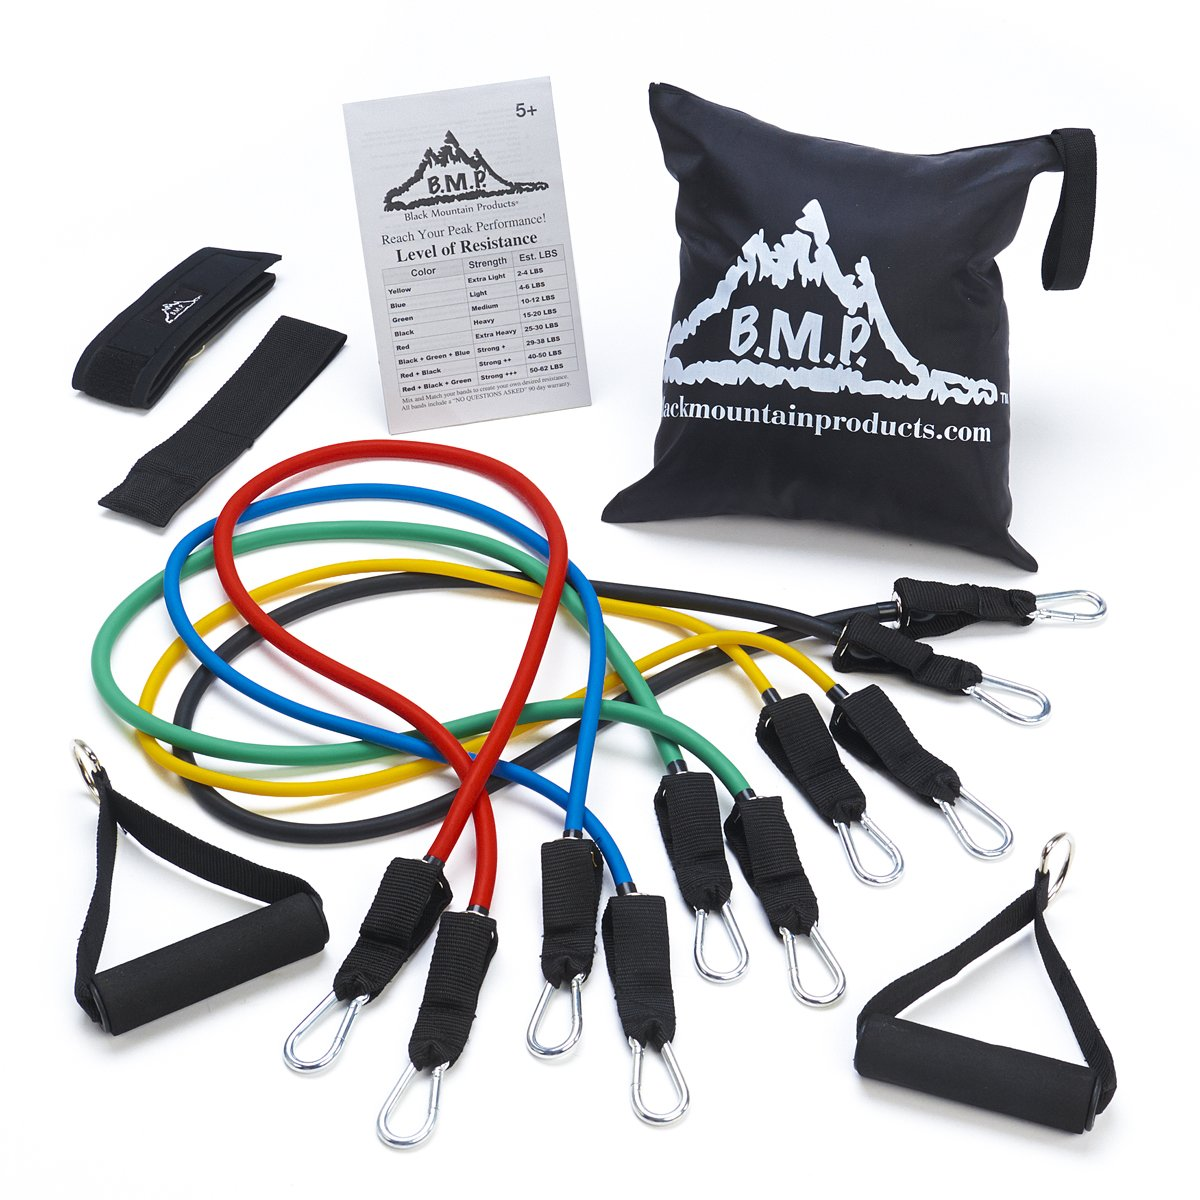 fast metabolism diet products, Black Mountain Products Resistance Band Set